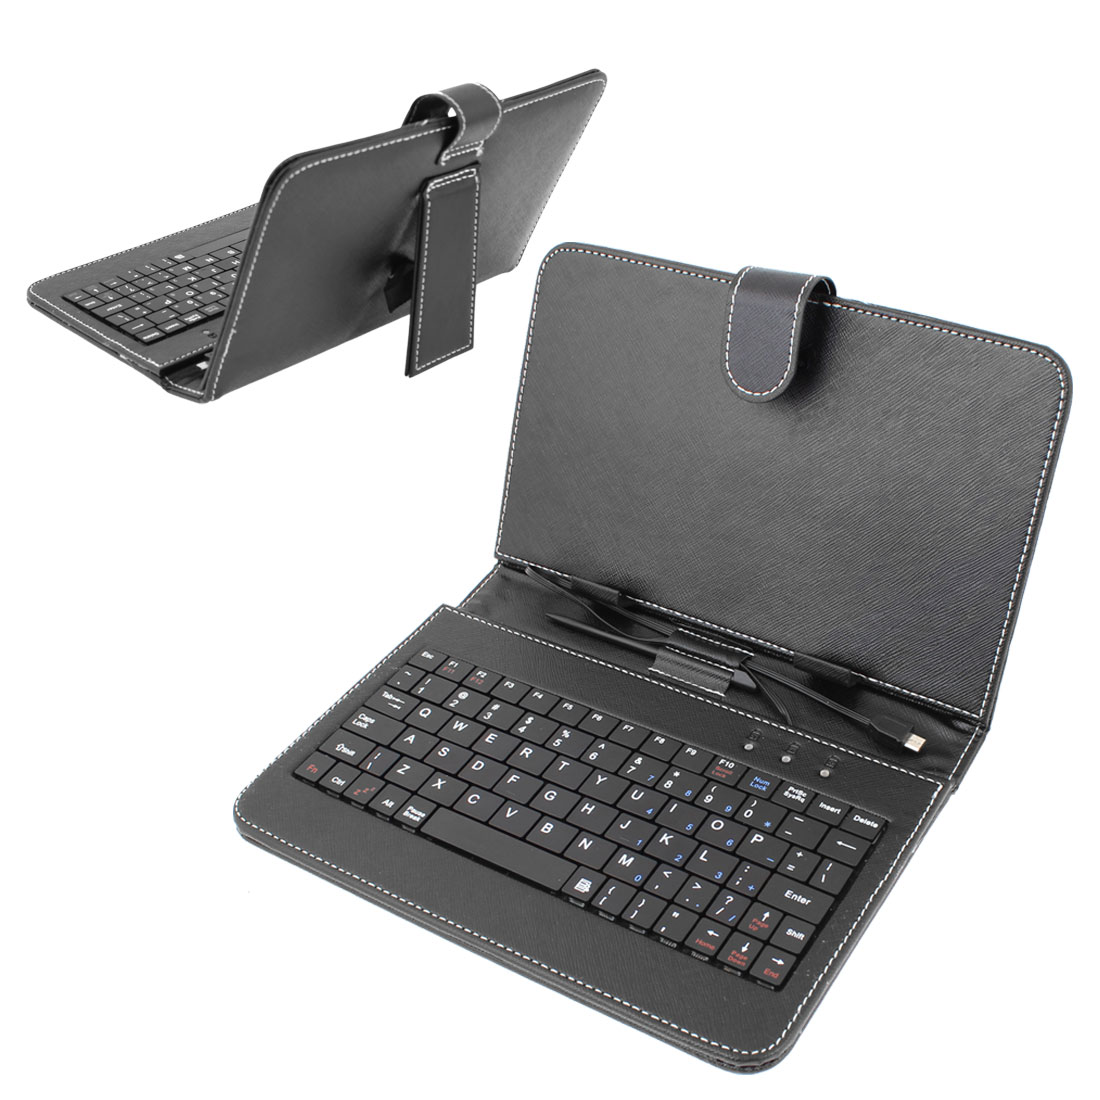 "Black 7"" Faux Leather Keyboard Case Cover for Cobalt Android Tablet PC"